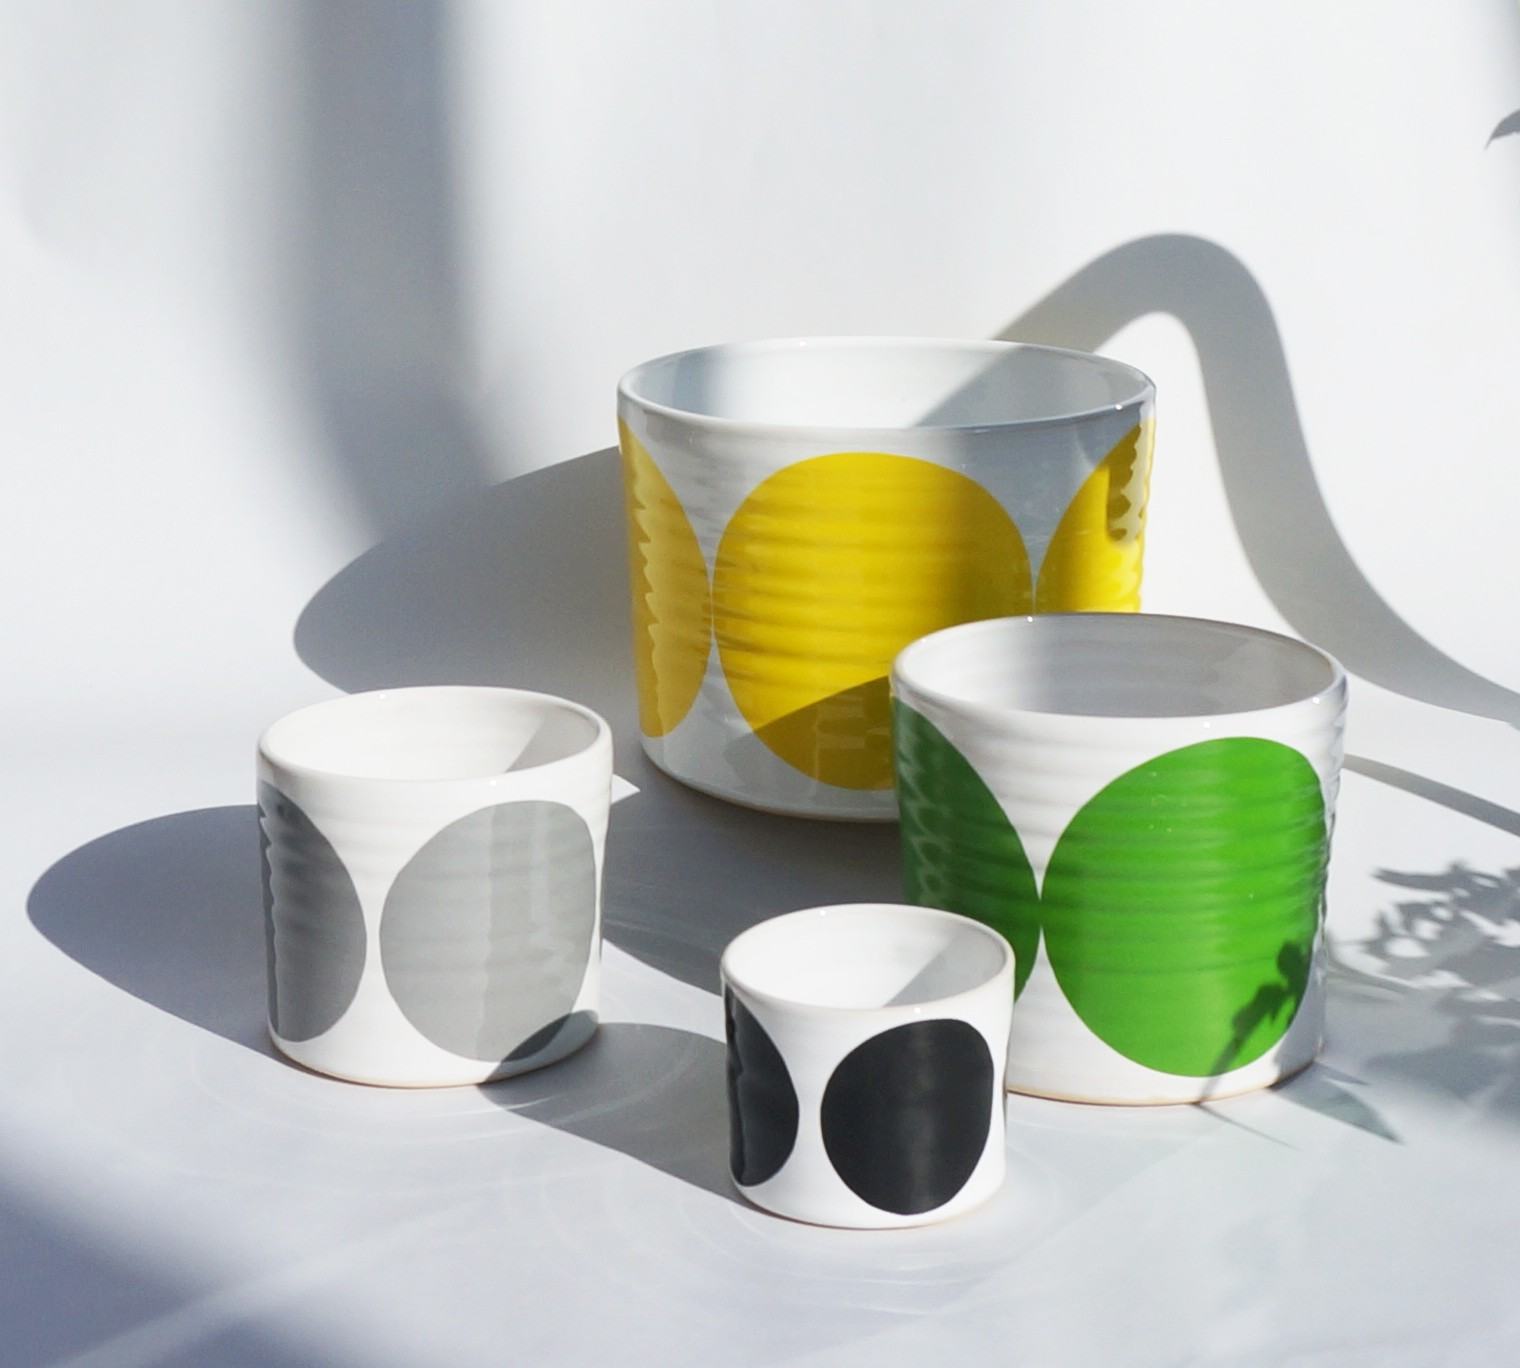 Set of 4 Pots Yellow, Green, Black, Grey